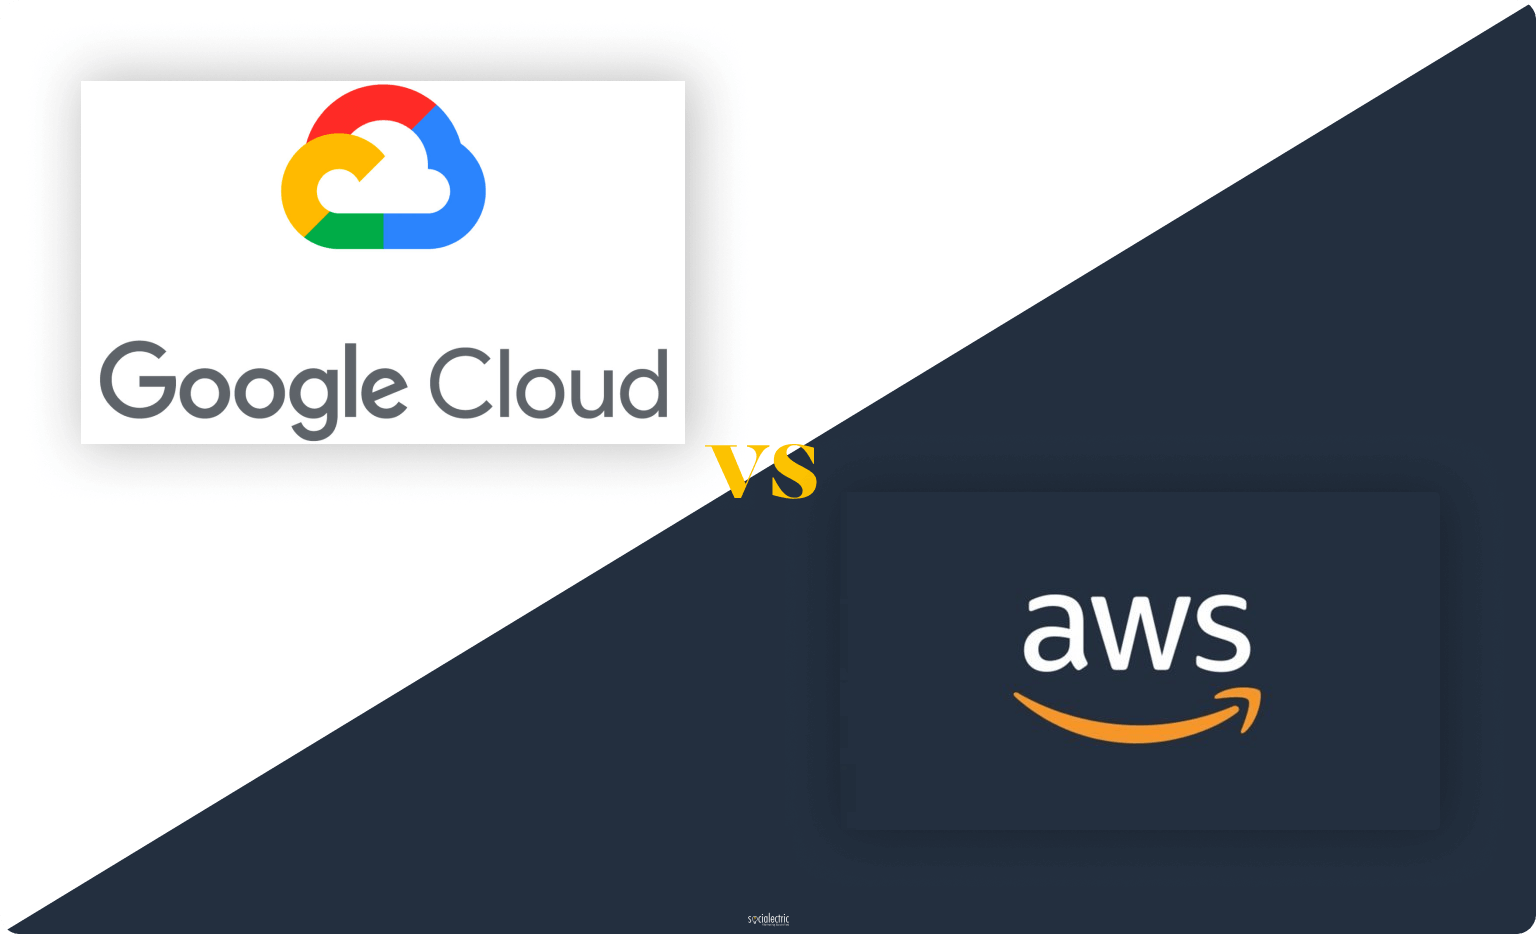 Google-Cloud-versus-AWS-what-brings-more-benefits-for-website-users-the-most